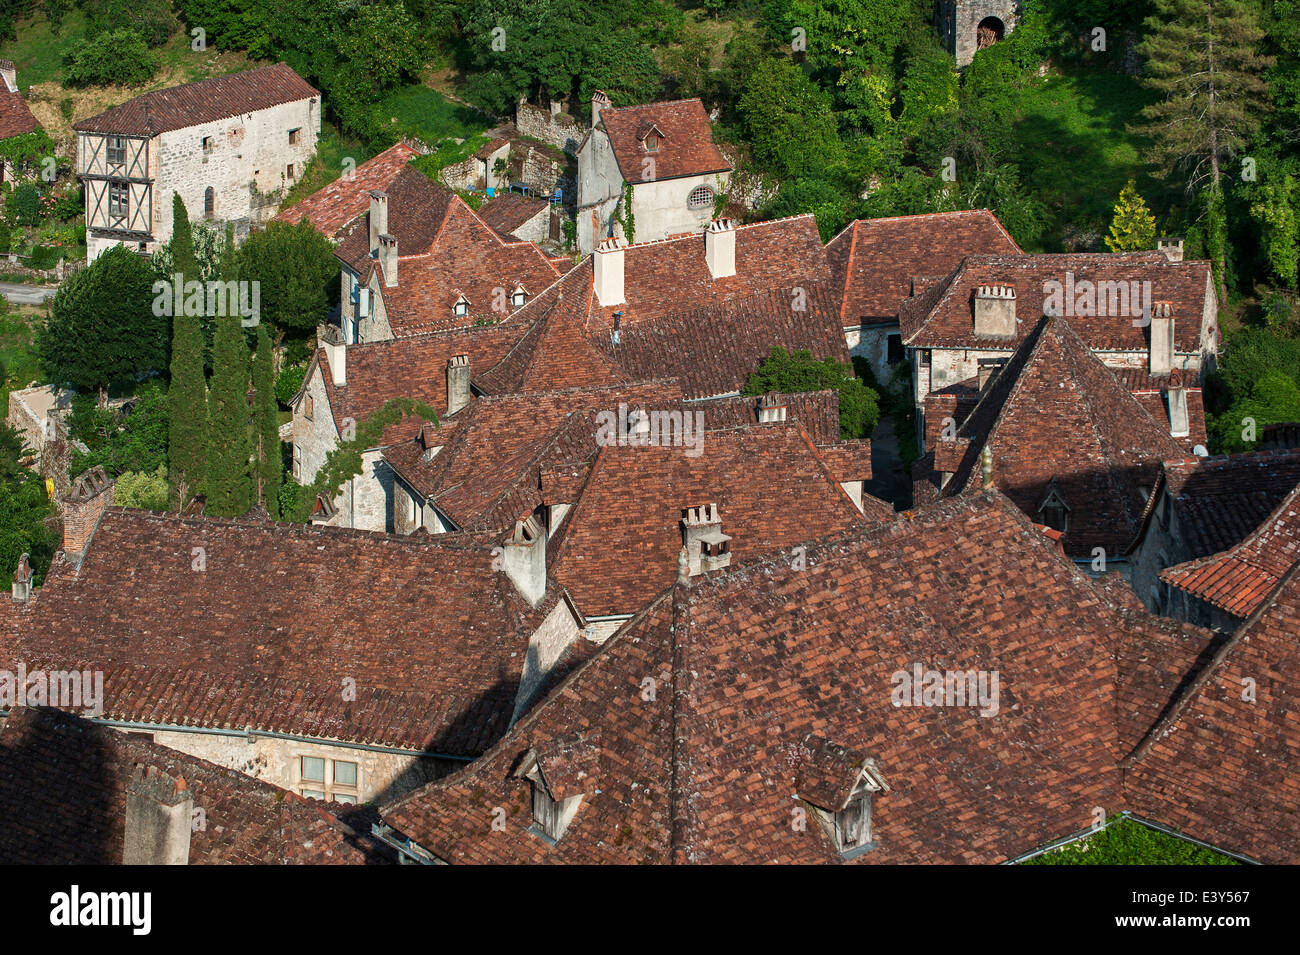 Red tiled roofs of houses at the medieval village Saint-Cirq-Lapopie, Lot, Midi-Pyrénées, France - Stock Image